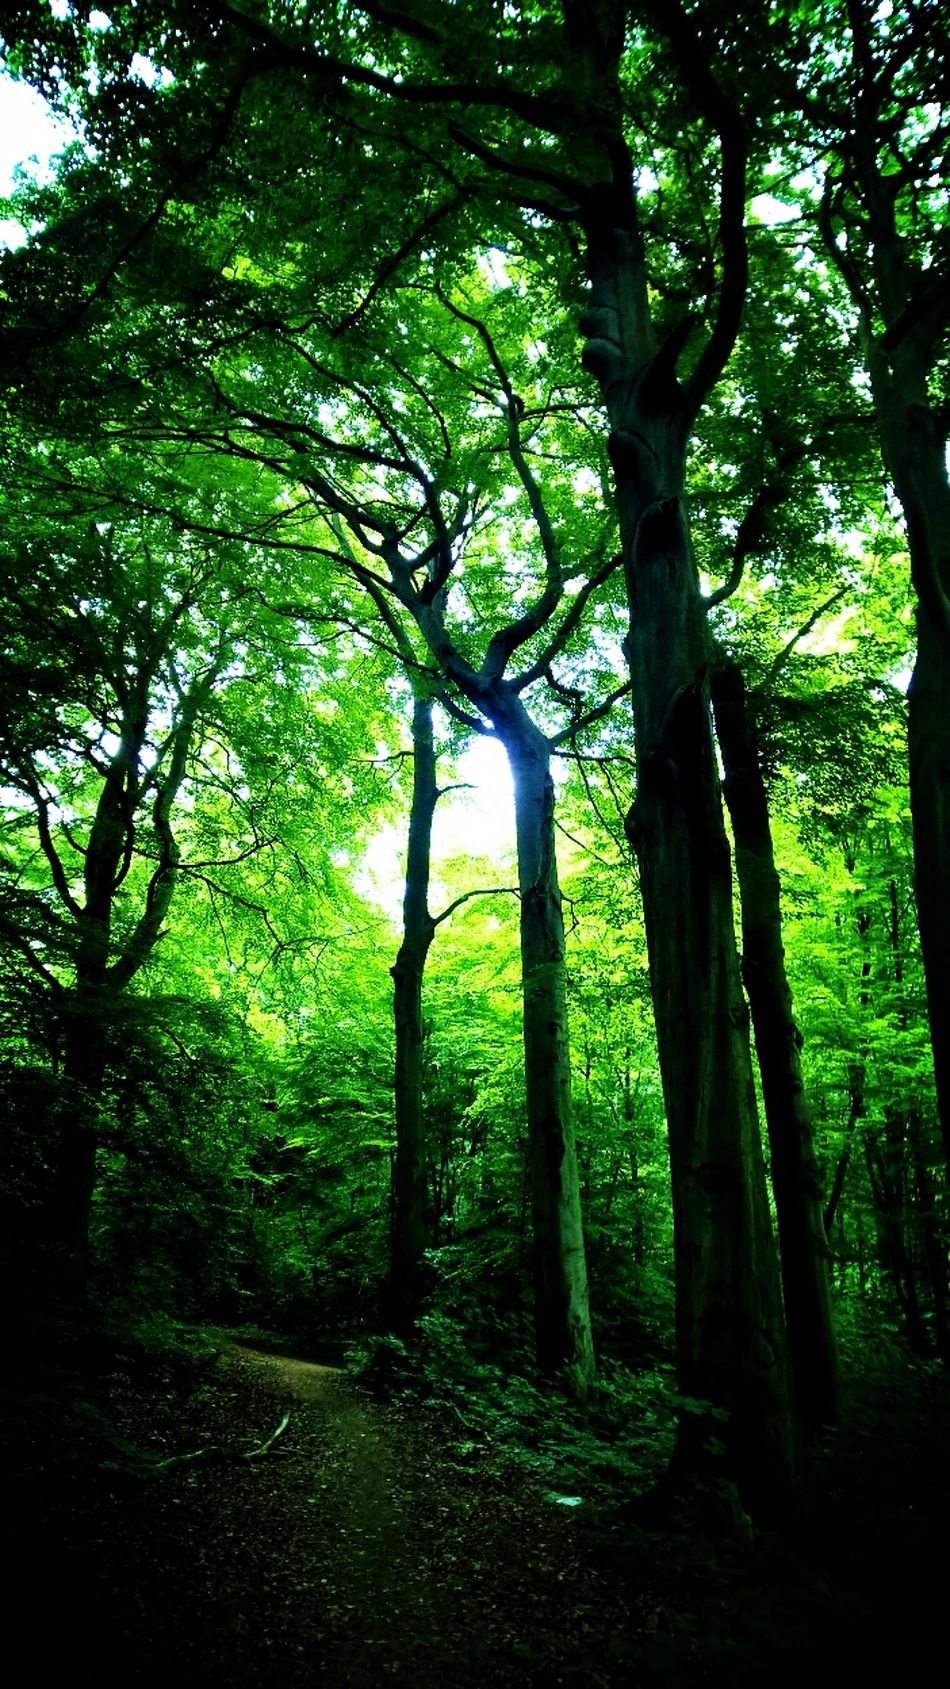 Tree Green Color Nature Growth Beauty In Nature No People Branch Day Mystery Forest Forest Photography Fairyforest Shadow Moment Awakening Leafs 🍃 Dreamy Light